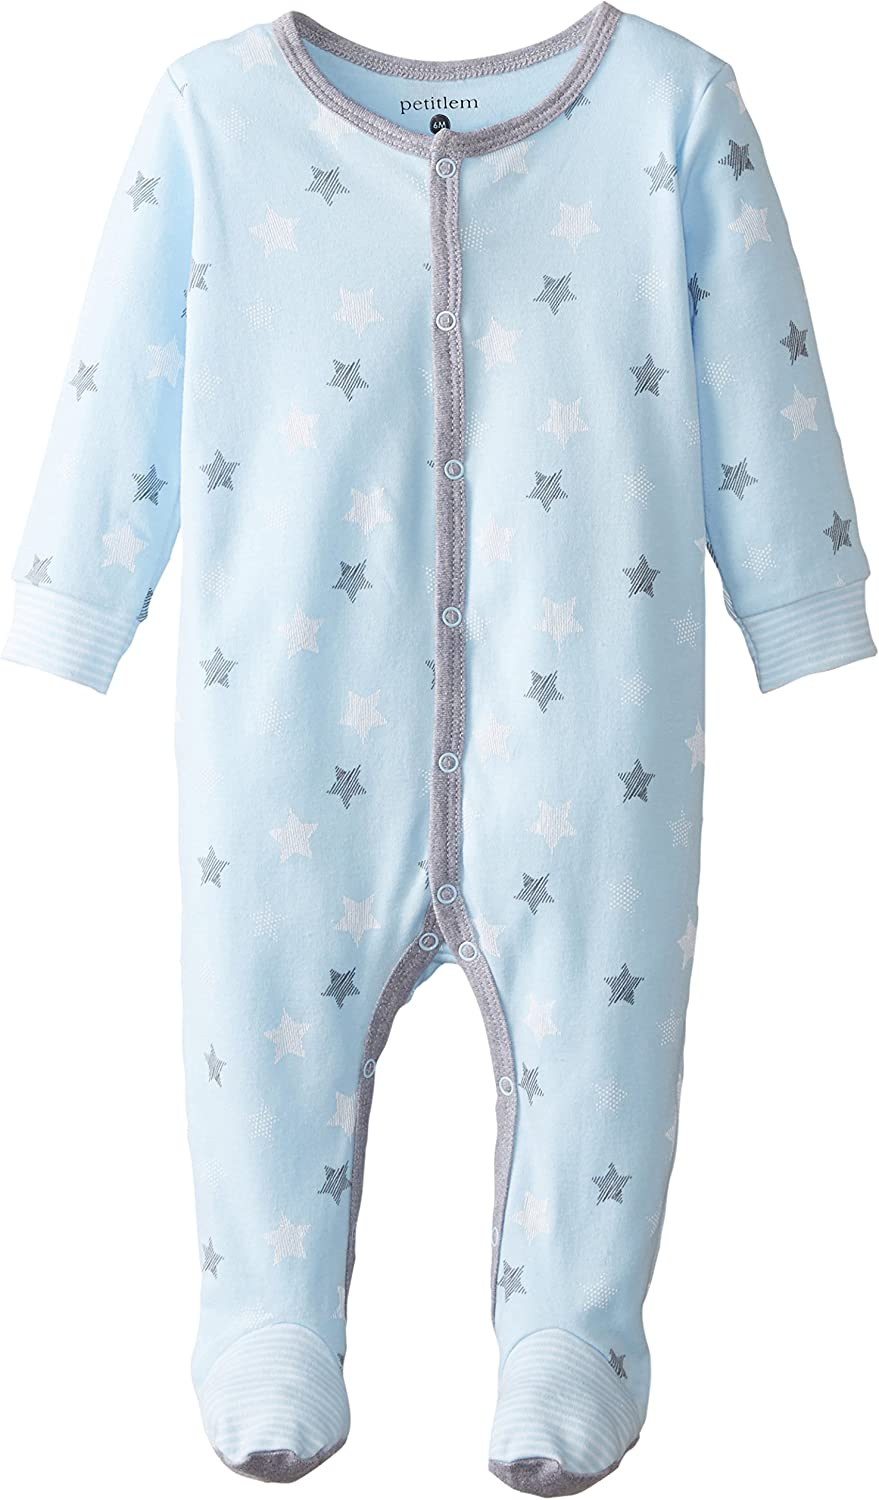 Petit Lem Unisex Baby Footed Sleeper